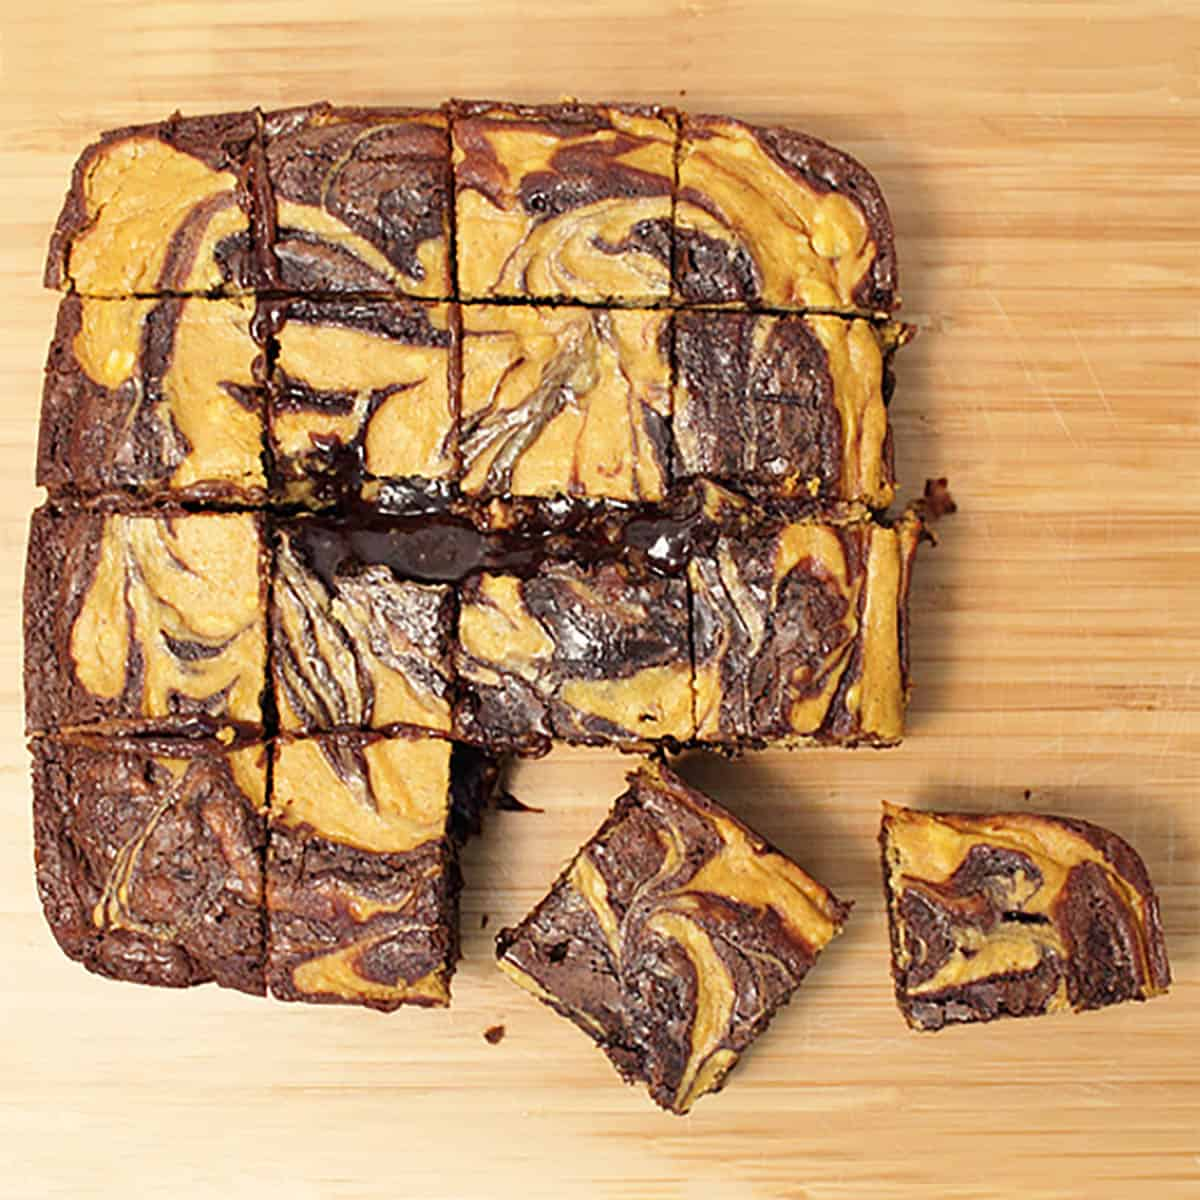 Overhead of brownies cut into bars on wooden cutting board.